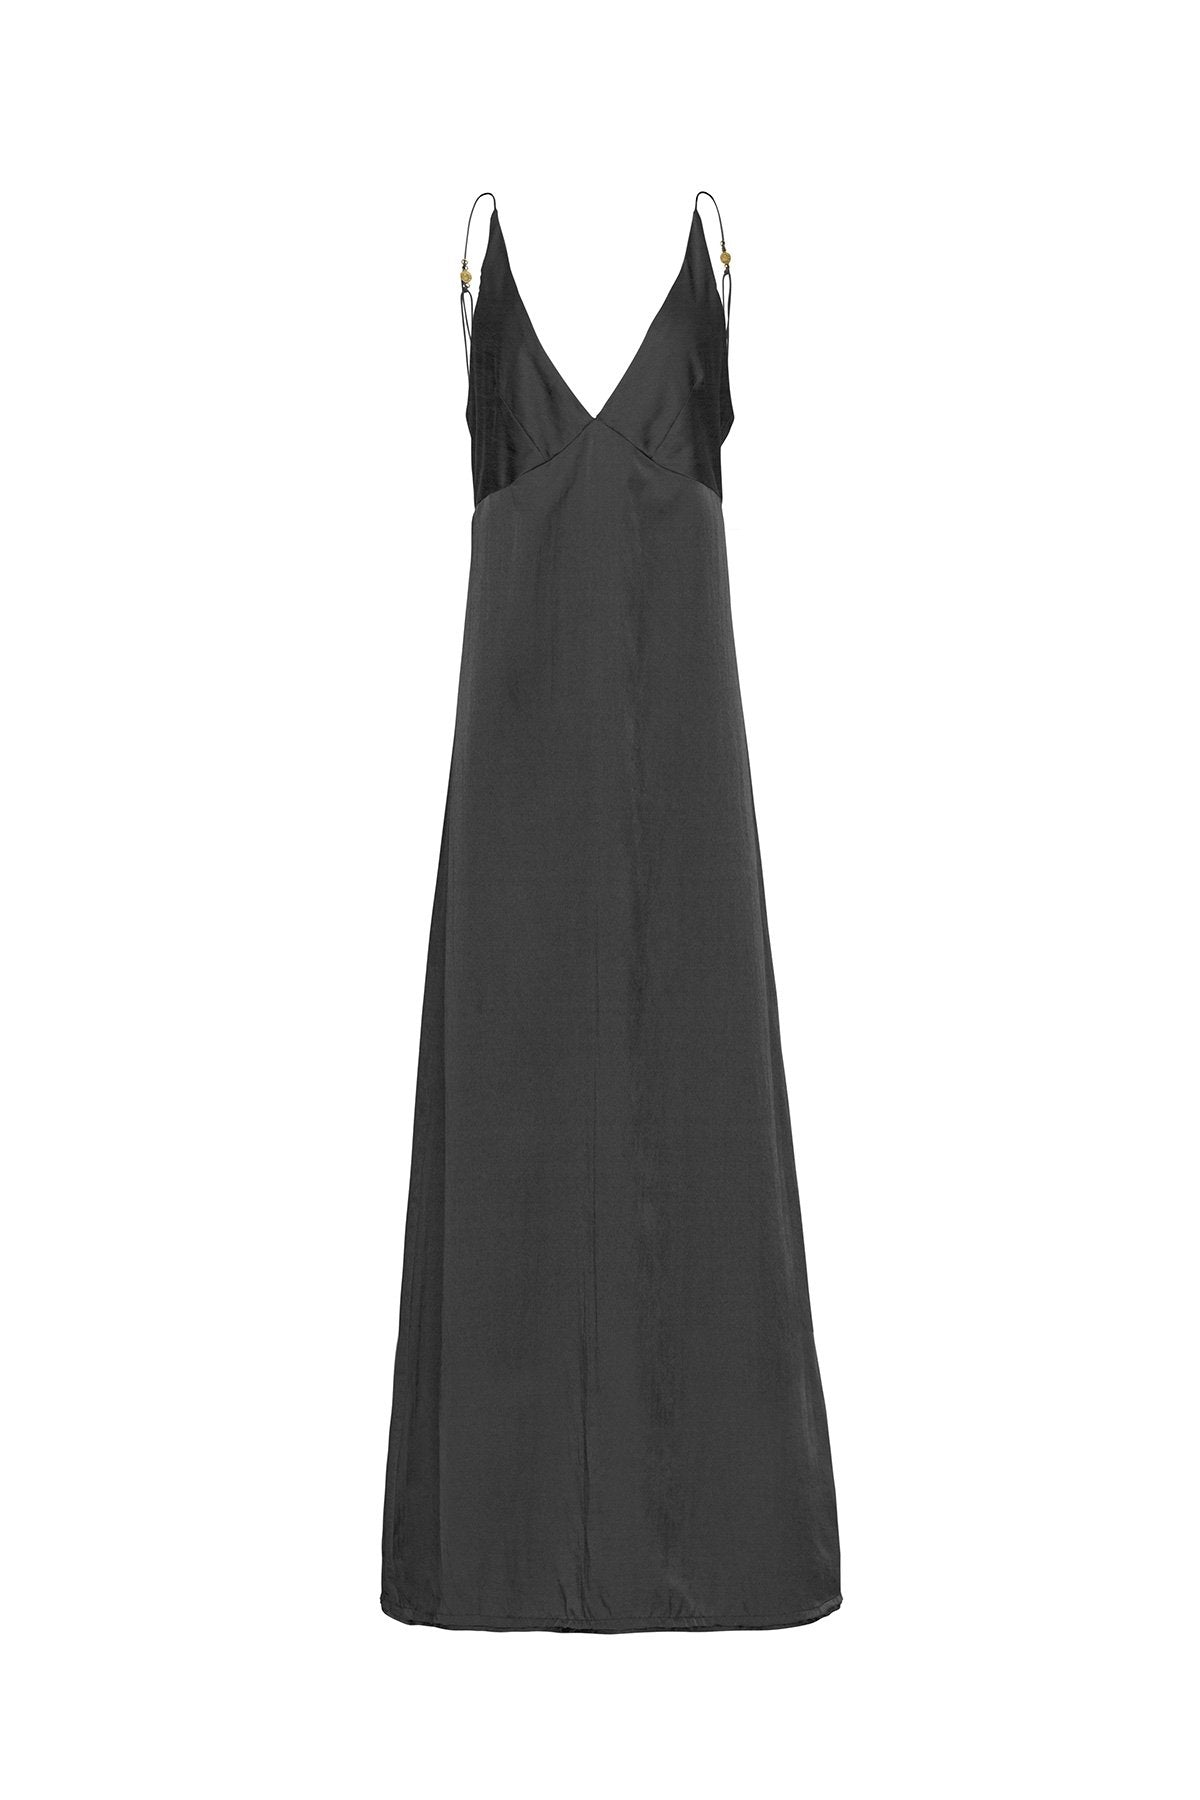 The Renoir Full Length Dress - Ebony